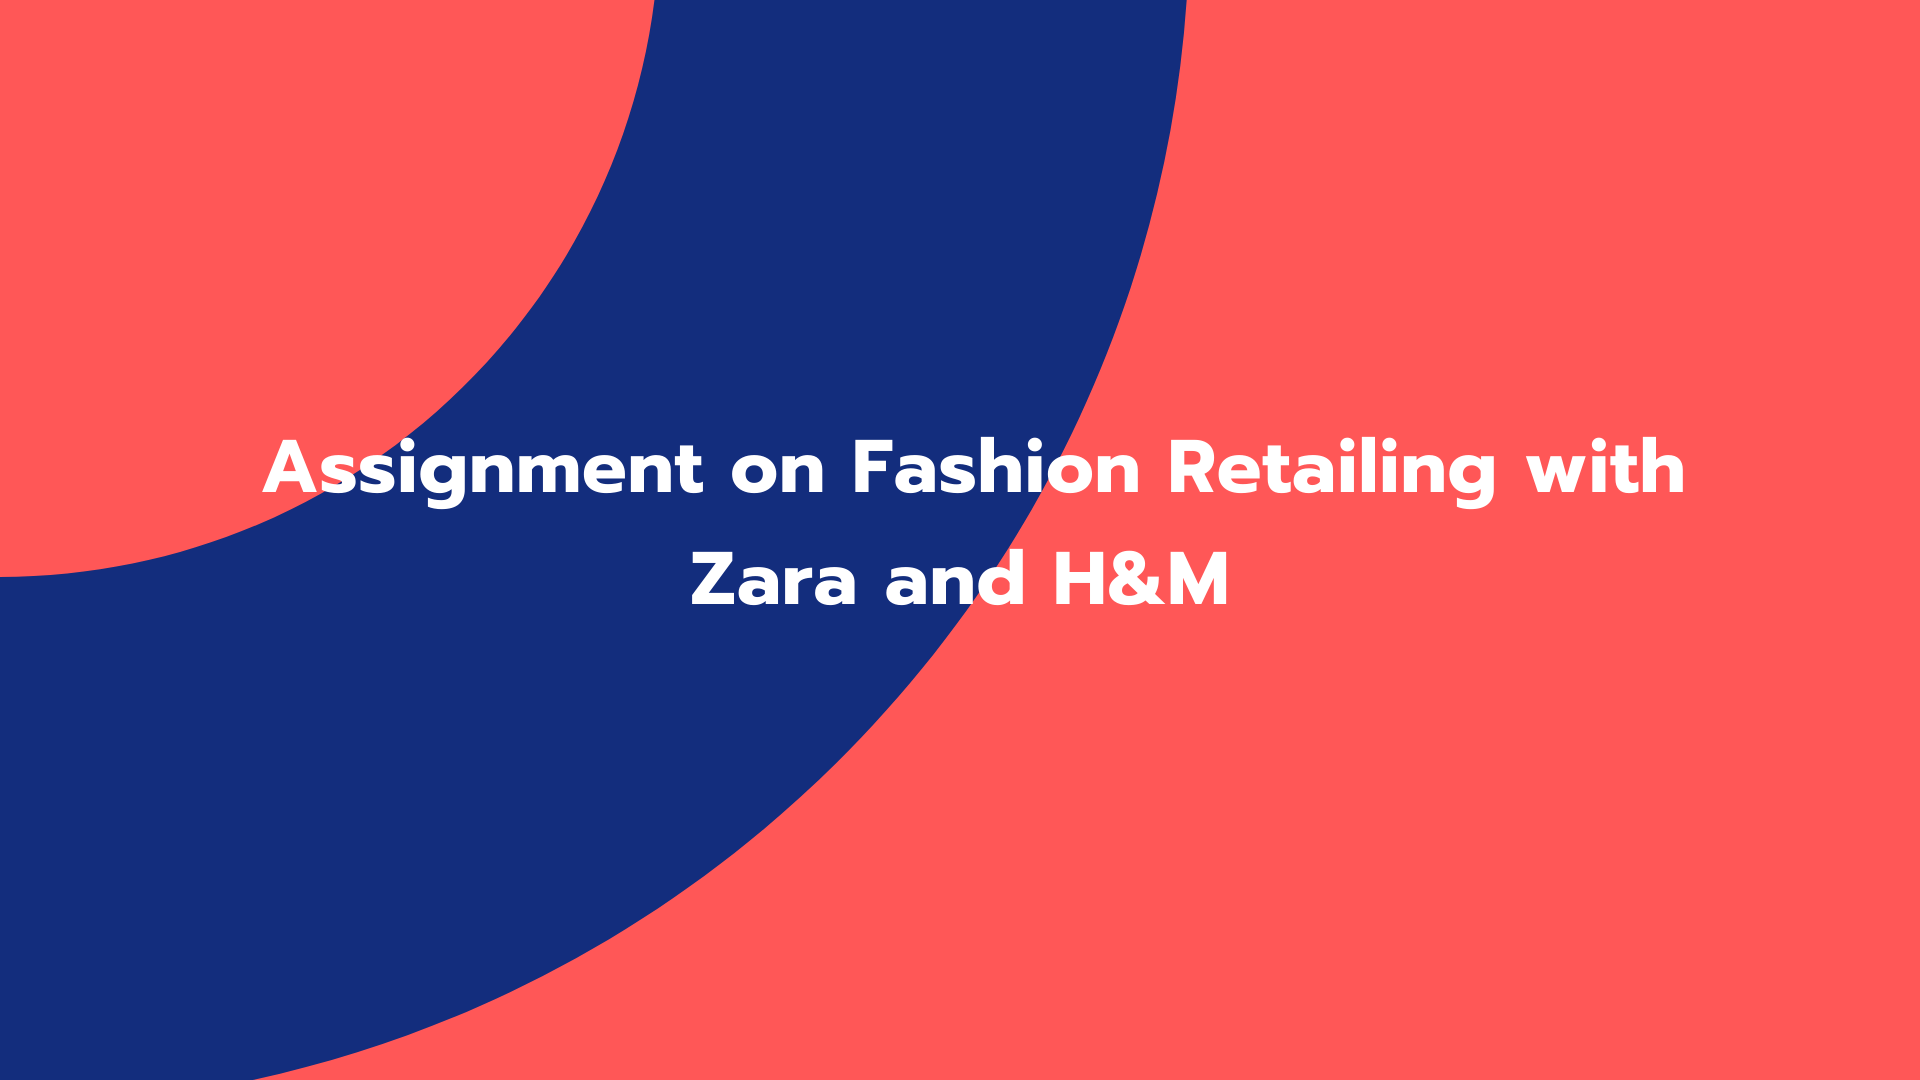 Assignment on Fashion Retailing with Zara and H&M